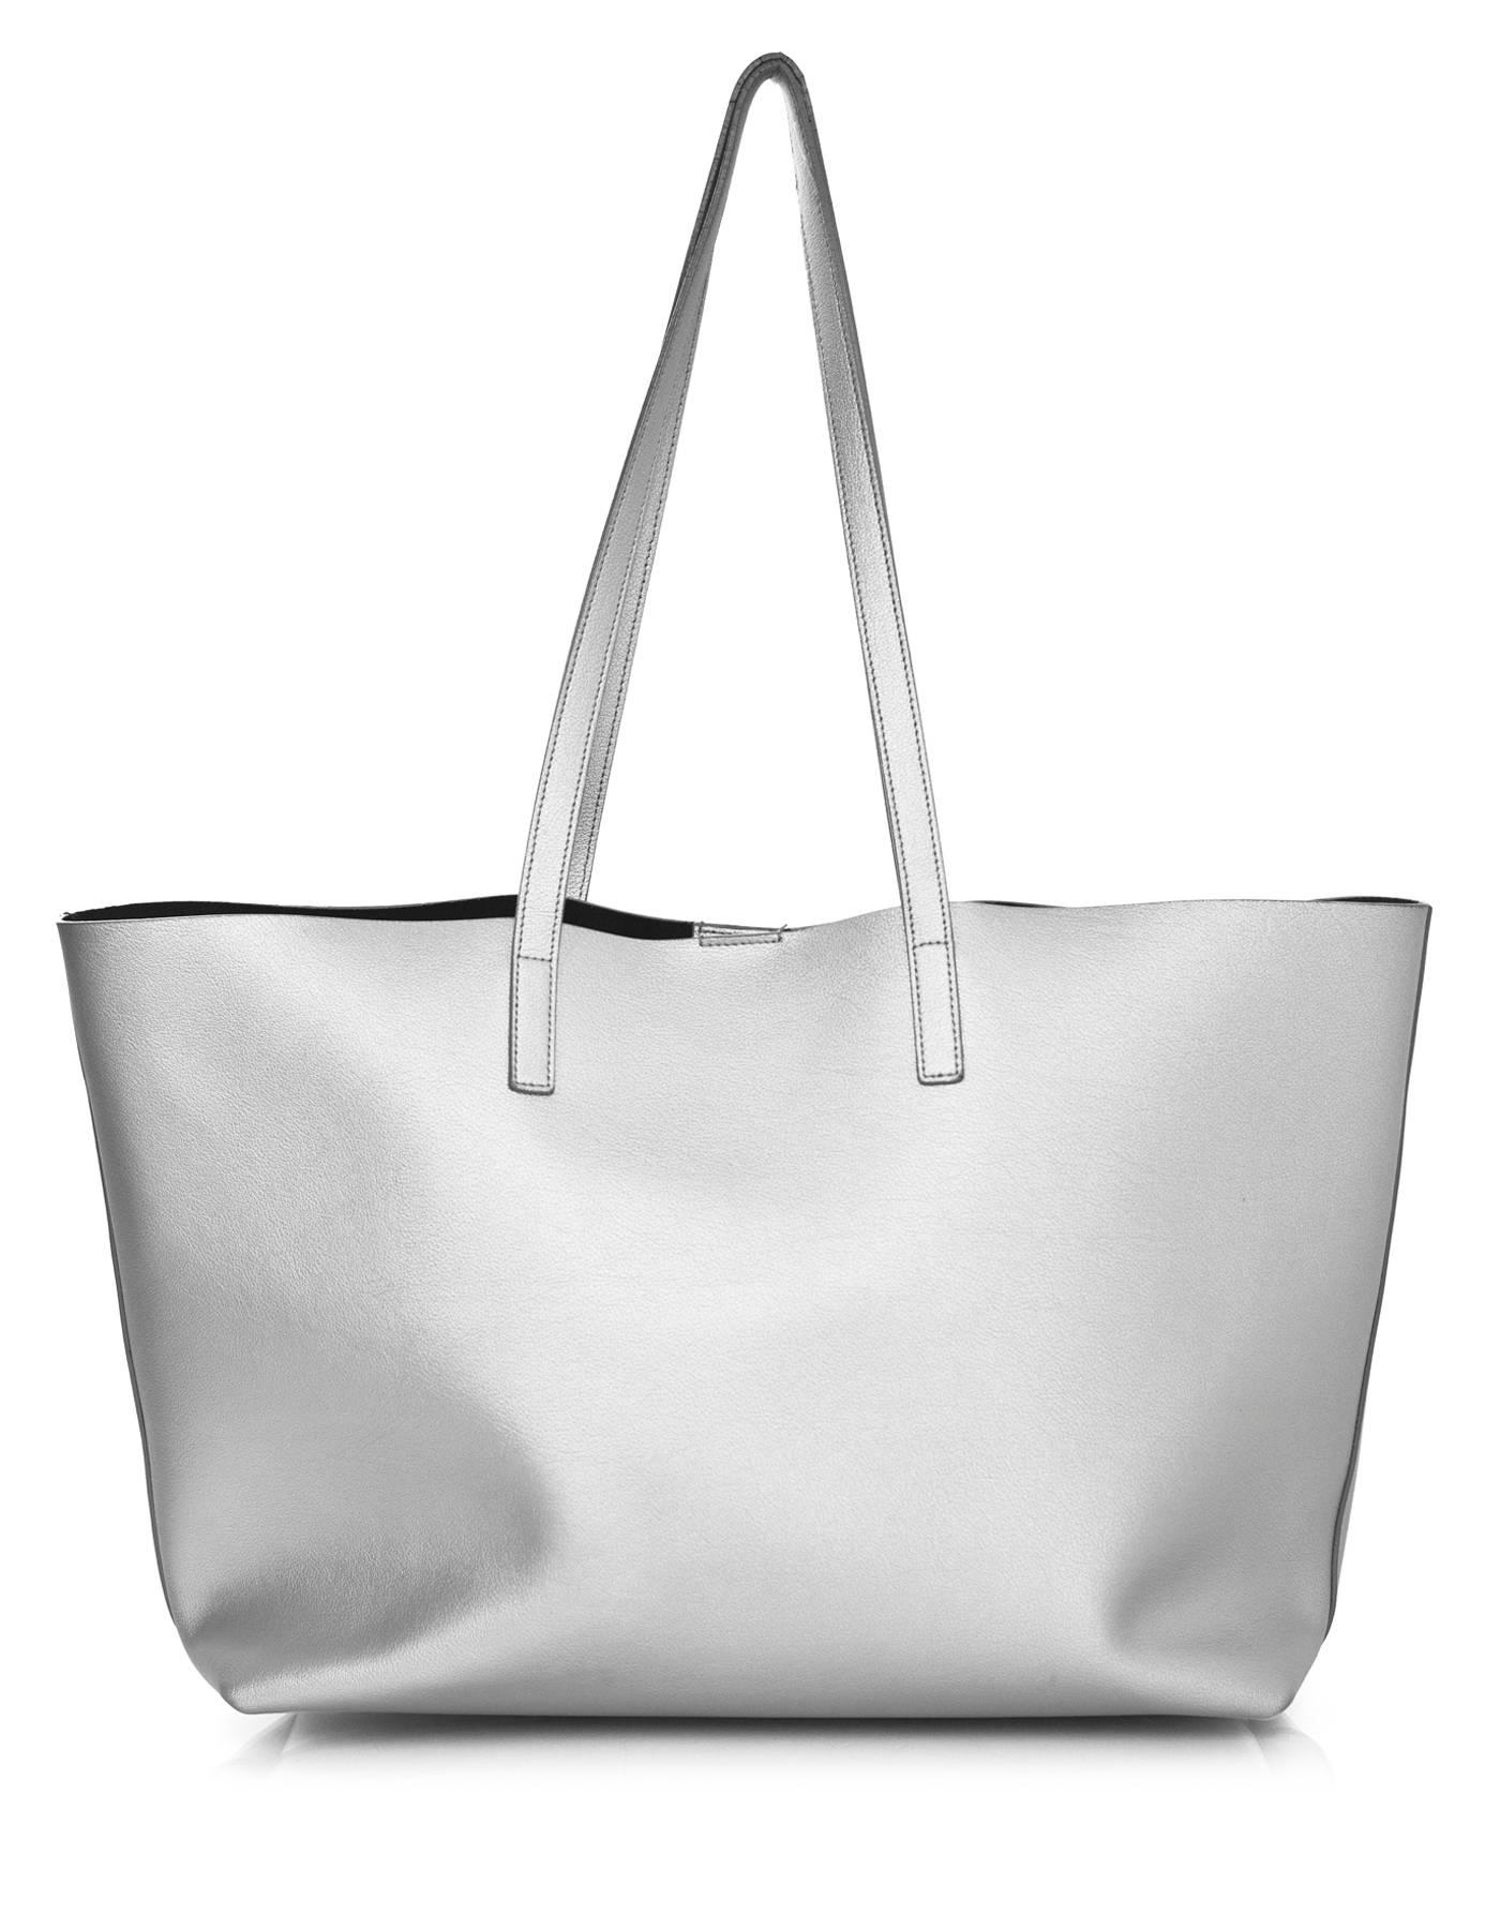 Saint Lau Silver Leather Large Ping Tote Bag W Insert For At 1stdibs